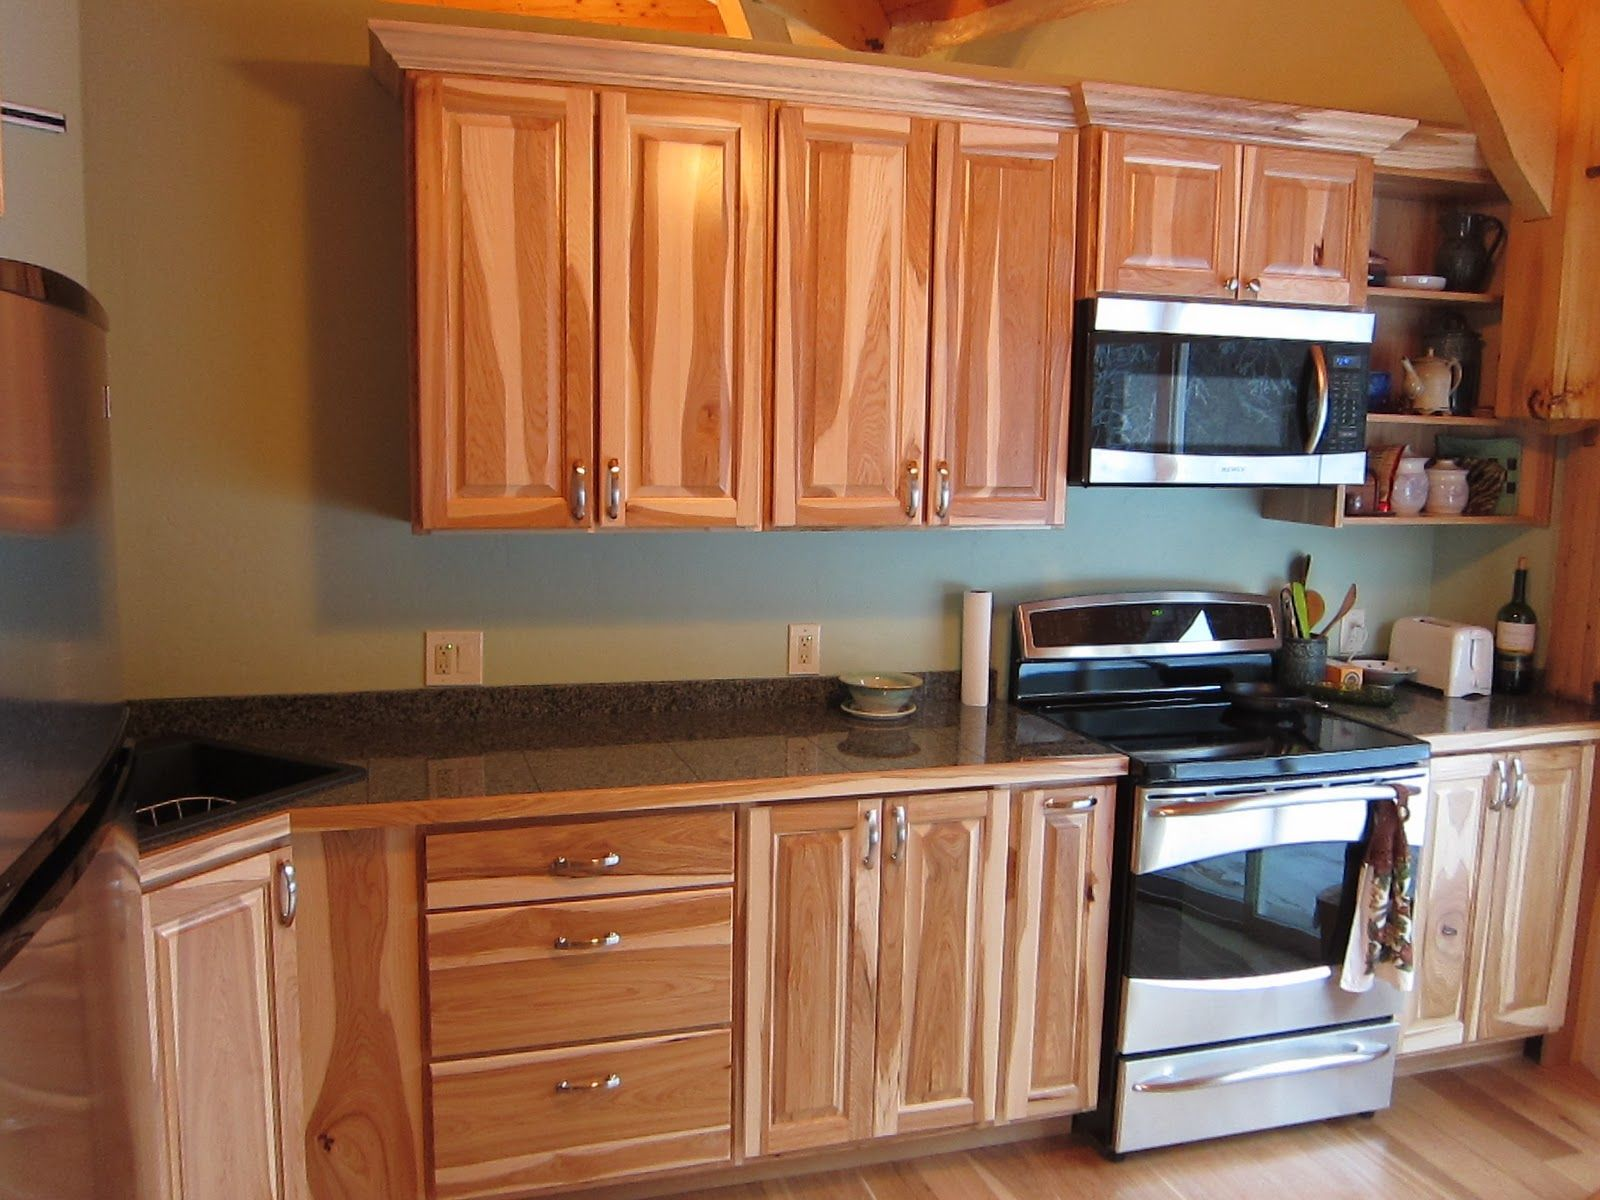 Hickory Kitchen Cabinets At Yahoo Search Results My